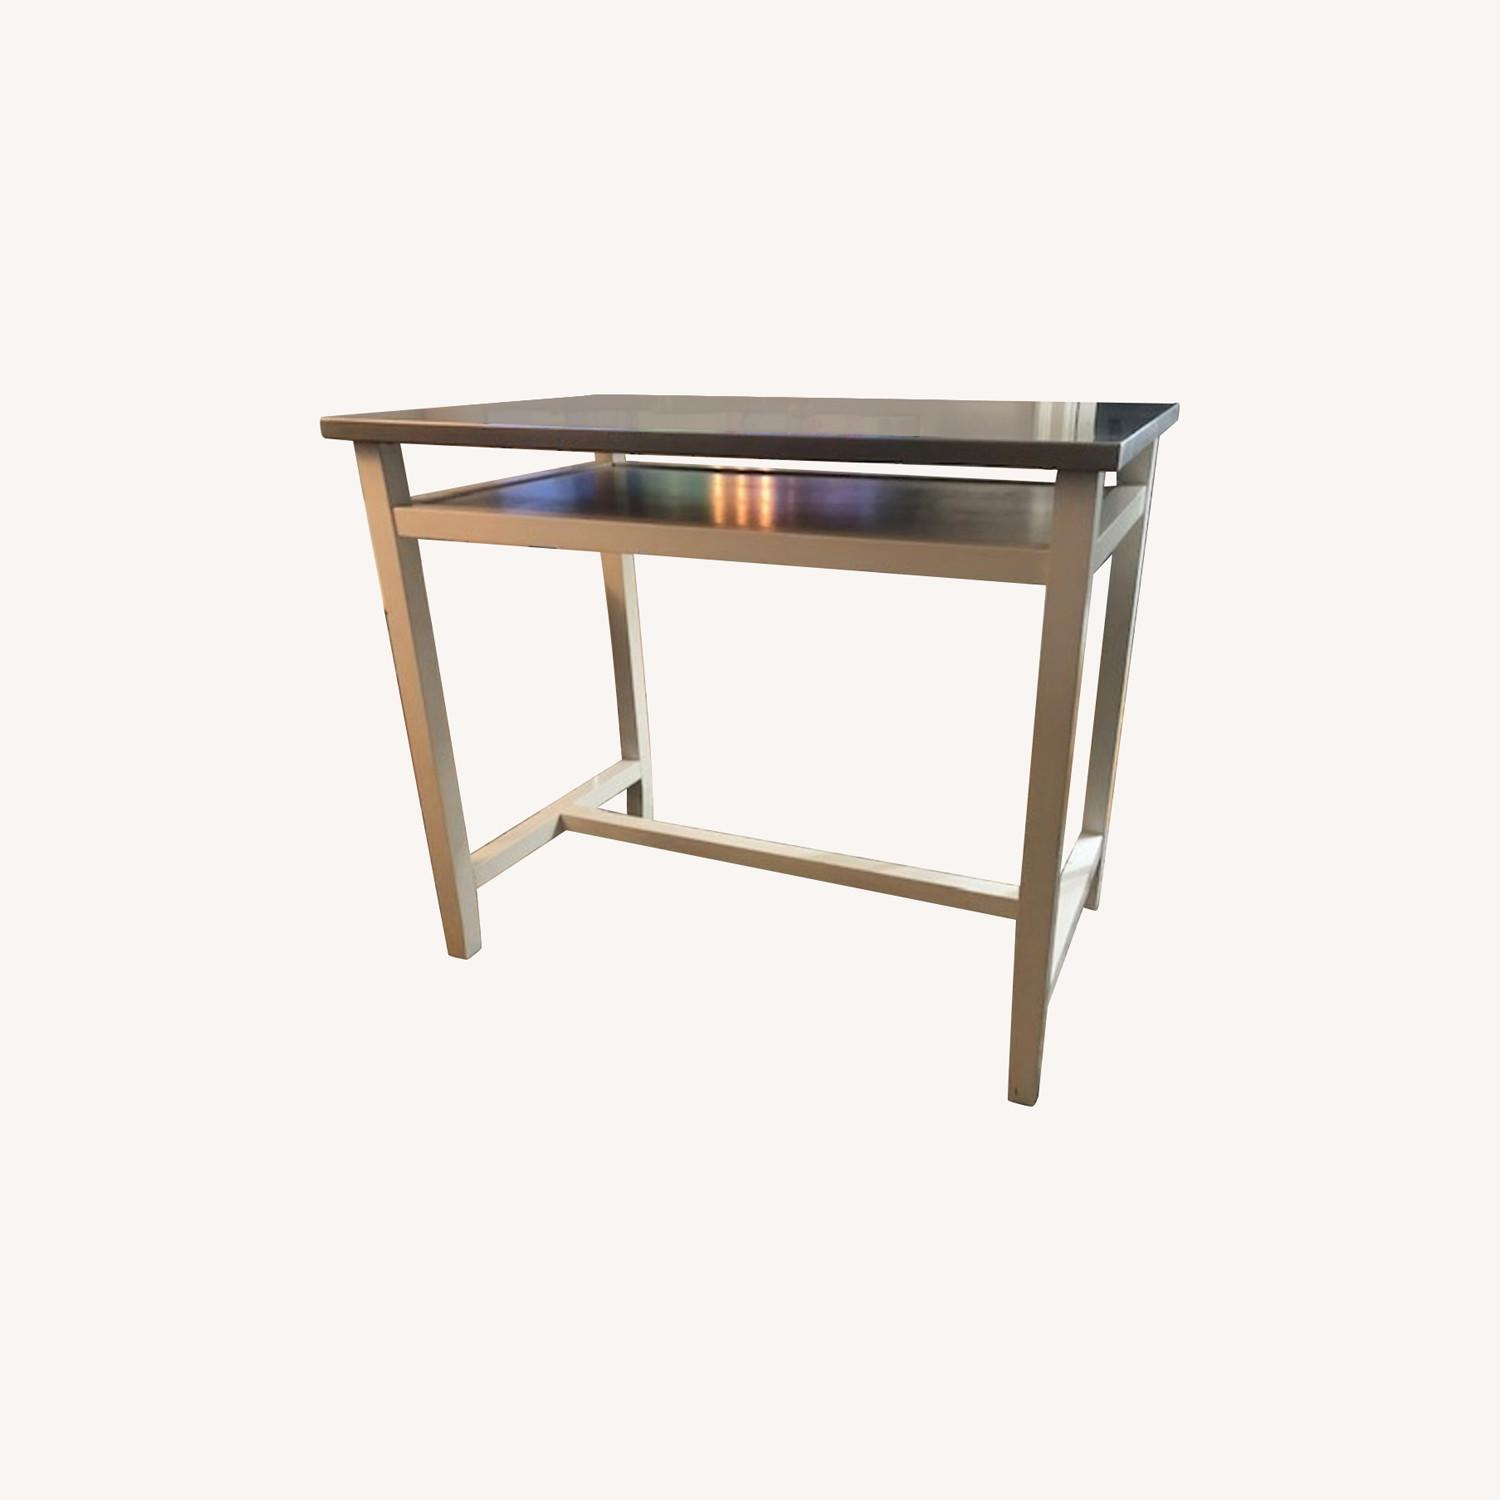 Crate & Barrel Stainless Steel High Top Table - image-0